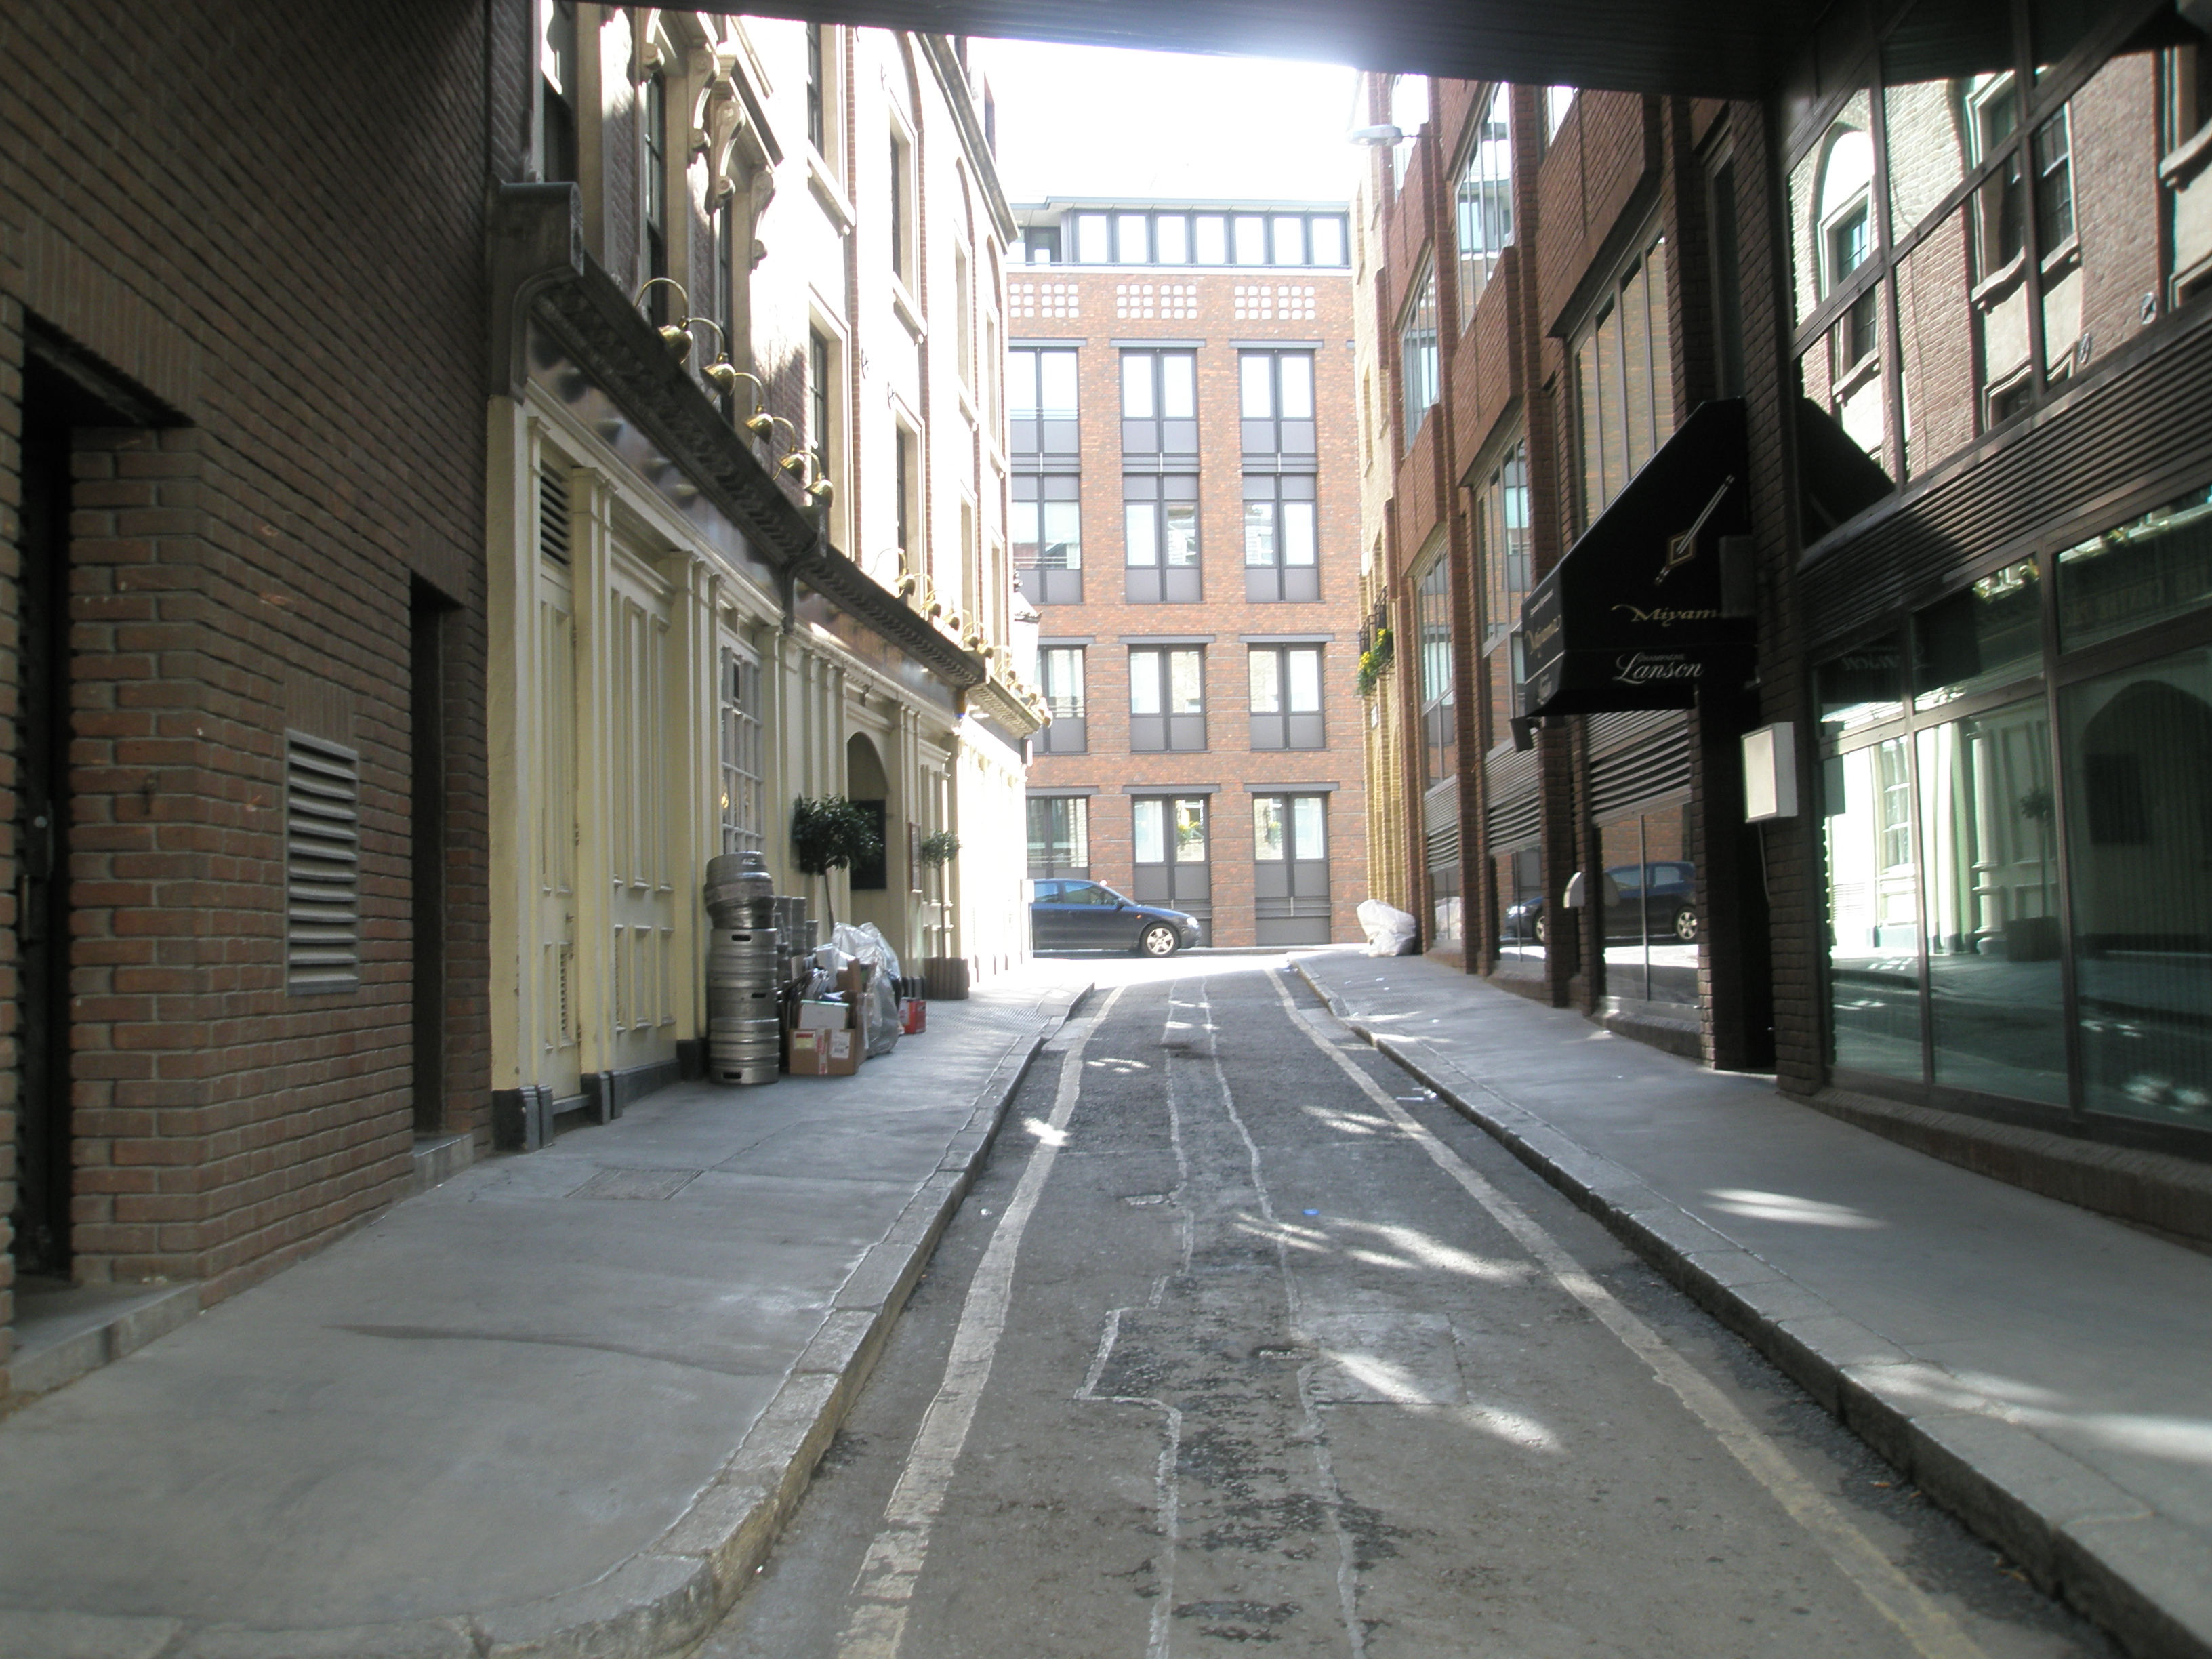 file:knightrider street city of london - wikimedia commons